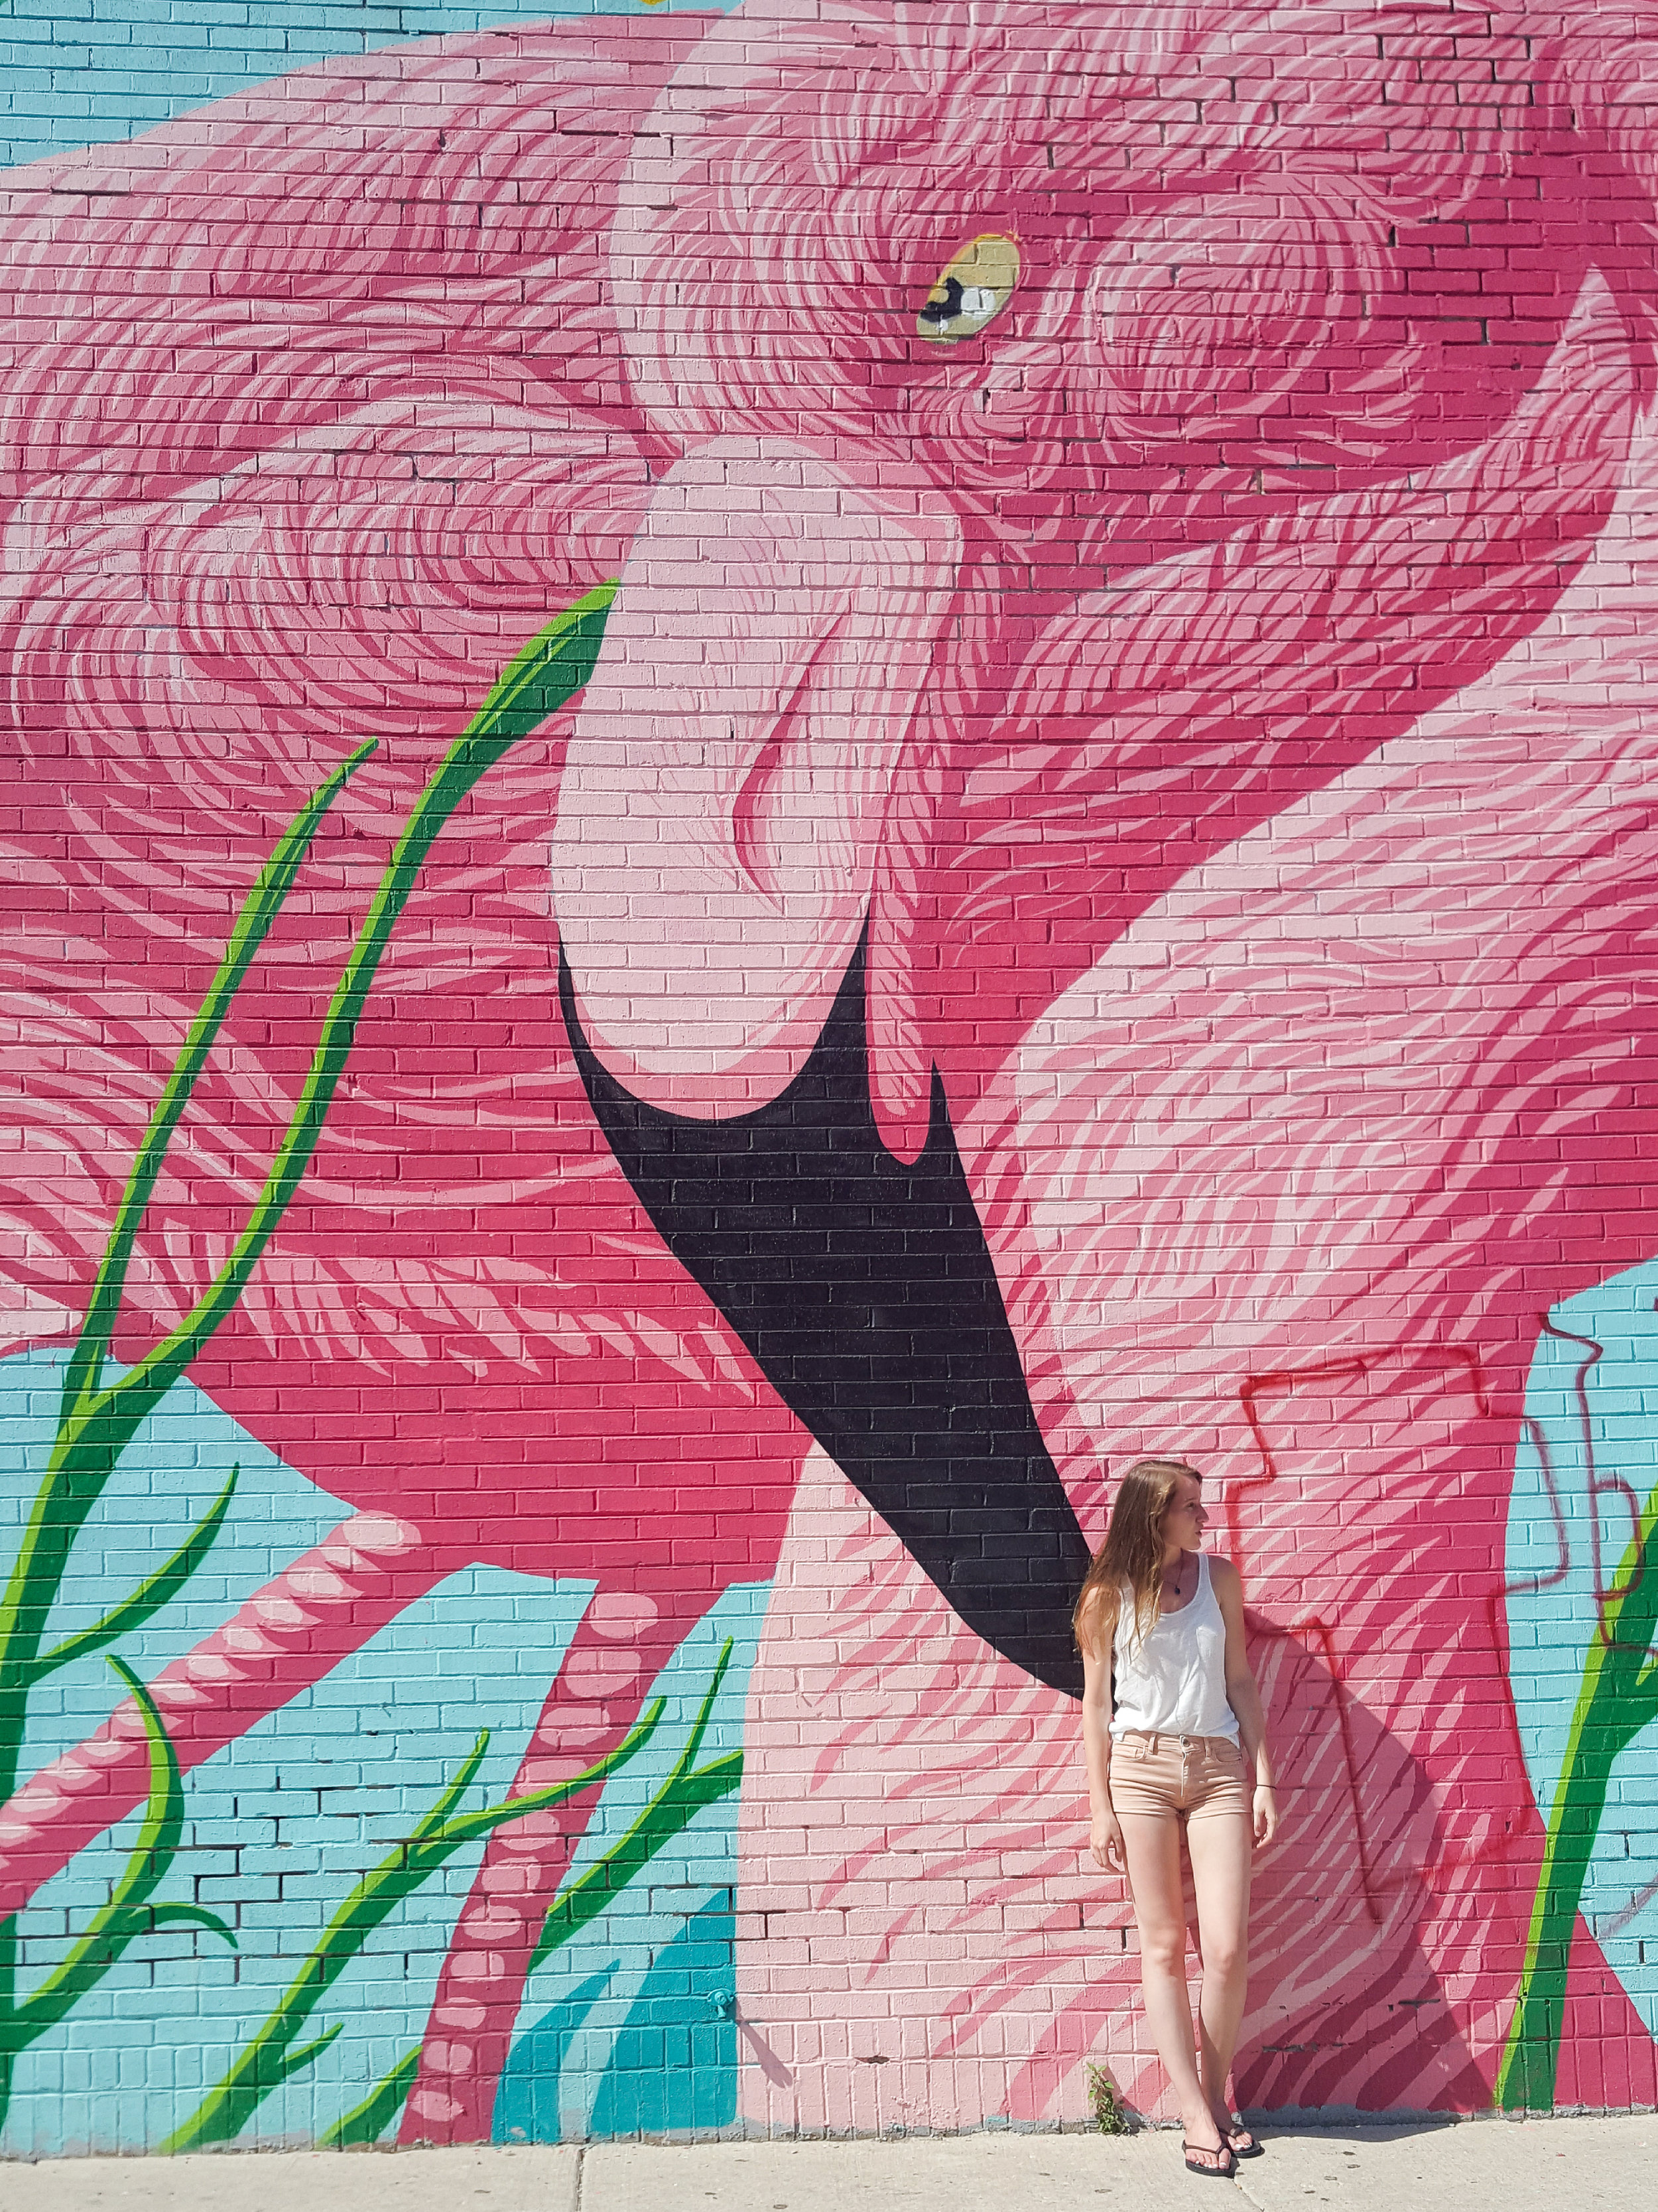 Possibly the most photogenic wall in Chicago - the flamingo wall at the Flamingo Rum Club